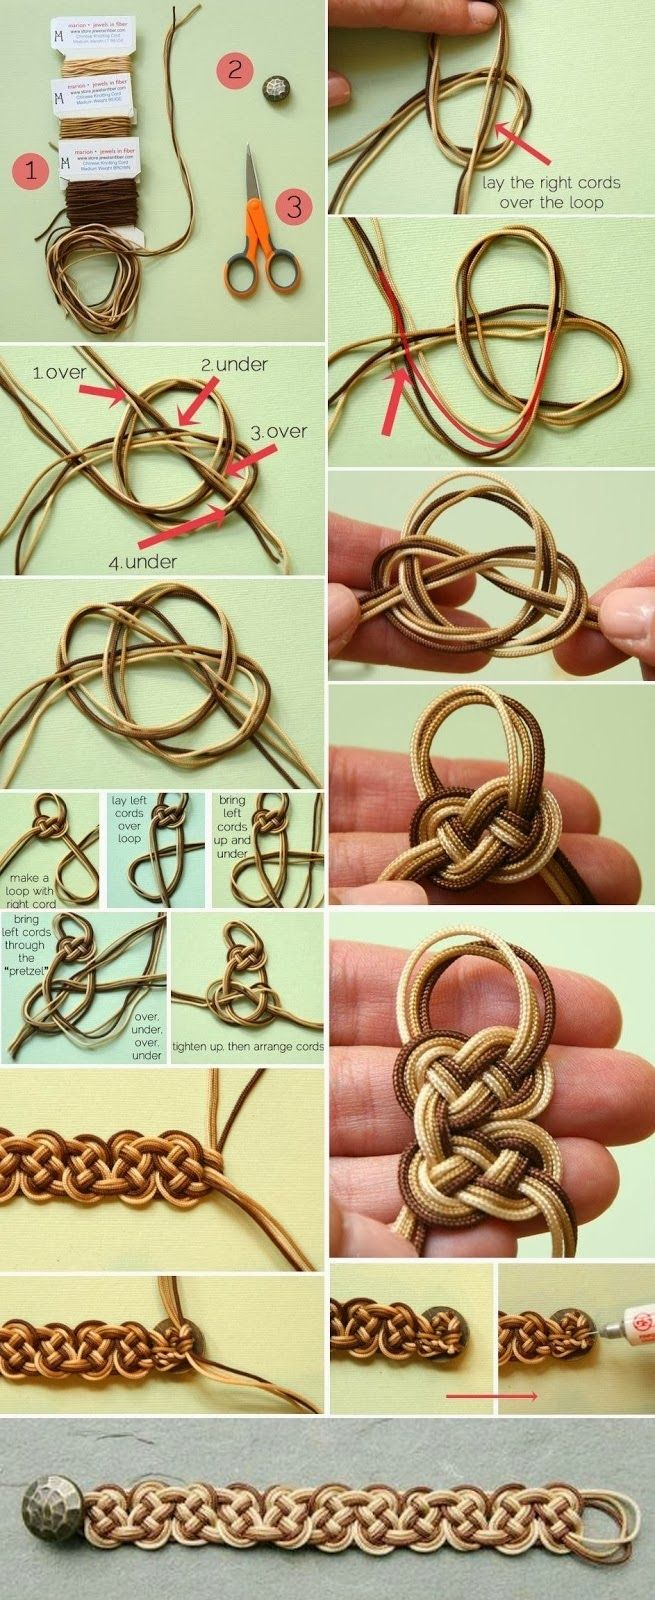 Lovely ombre celtic knot bracelet tutorial. Pinning this for @Gale L. because I know she loves Celtic knots.